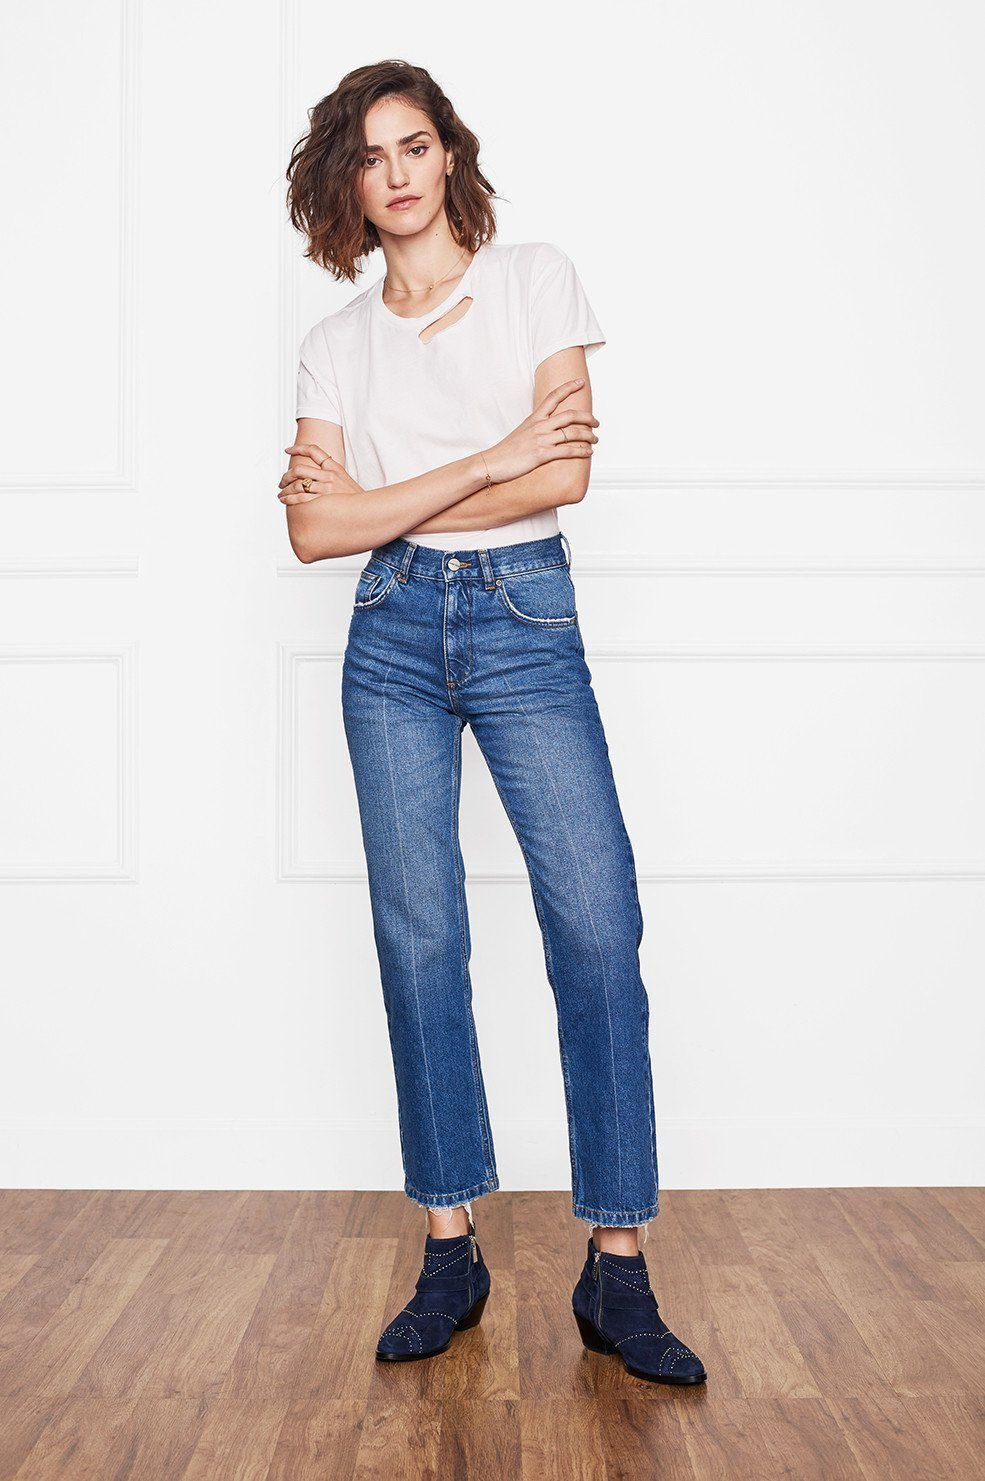 478d3ac1157 ANINE BING Jackie Jeans | Decorating the body | Jeans, Vintage jeans ...